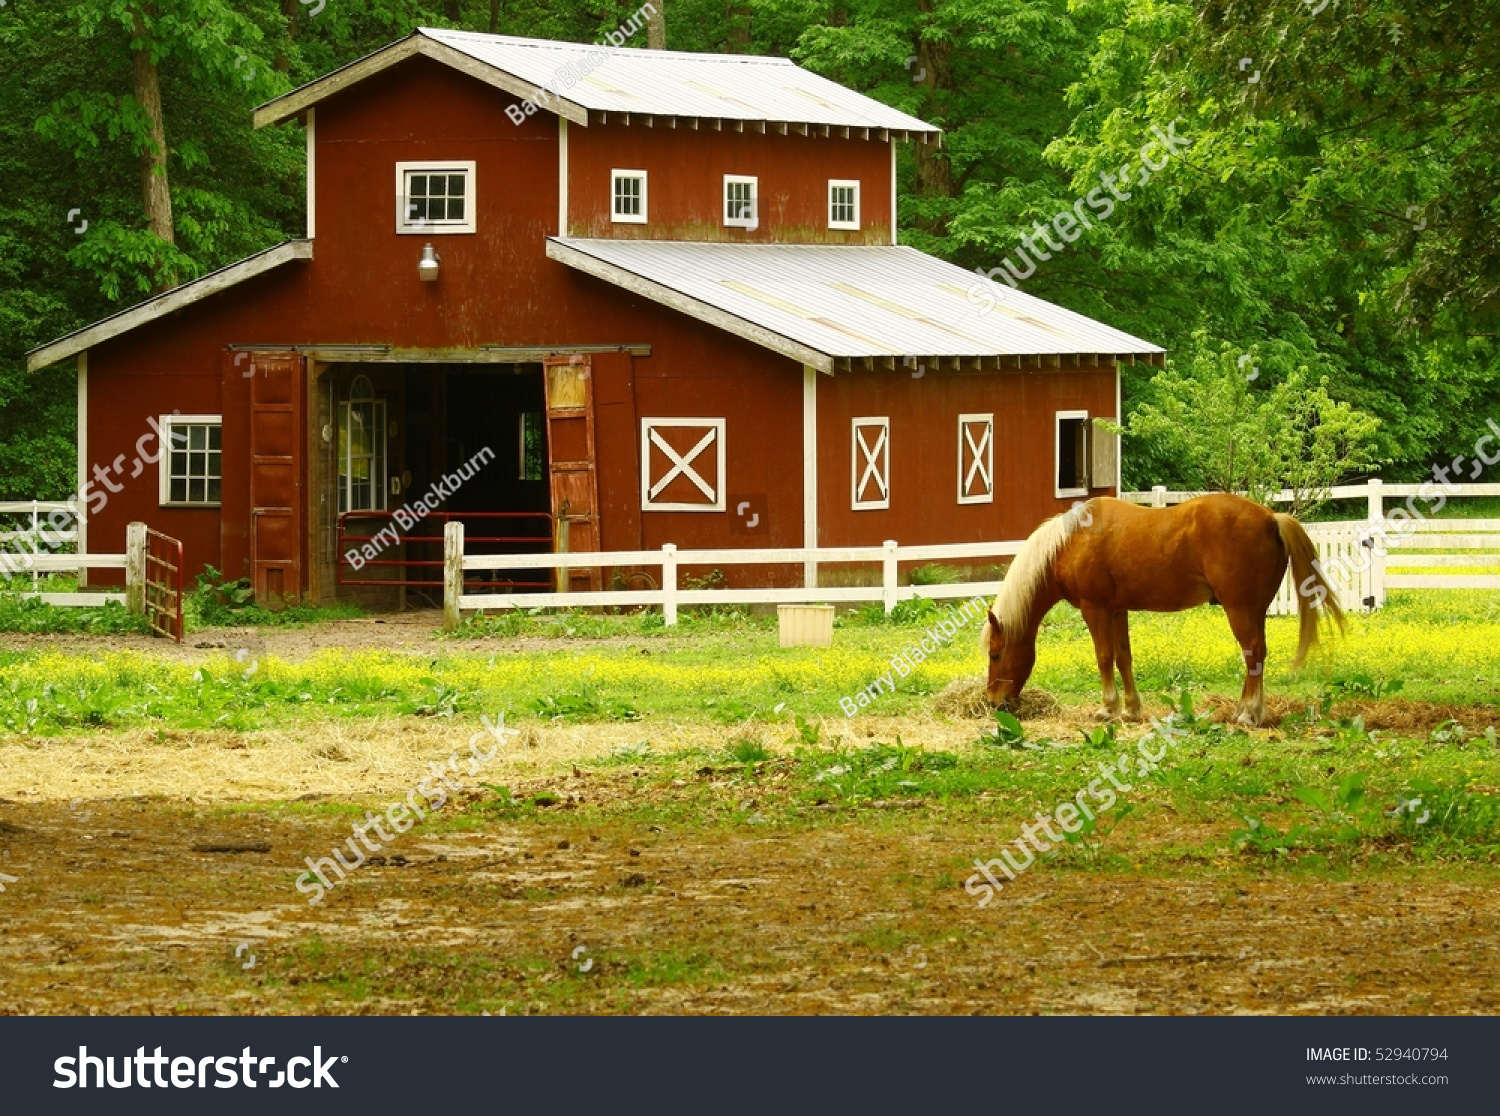 Old Horse Barn Horse Eating Straw Stock Photo 52940794